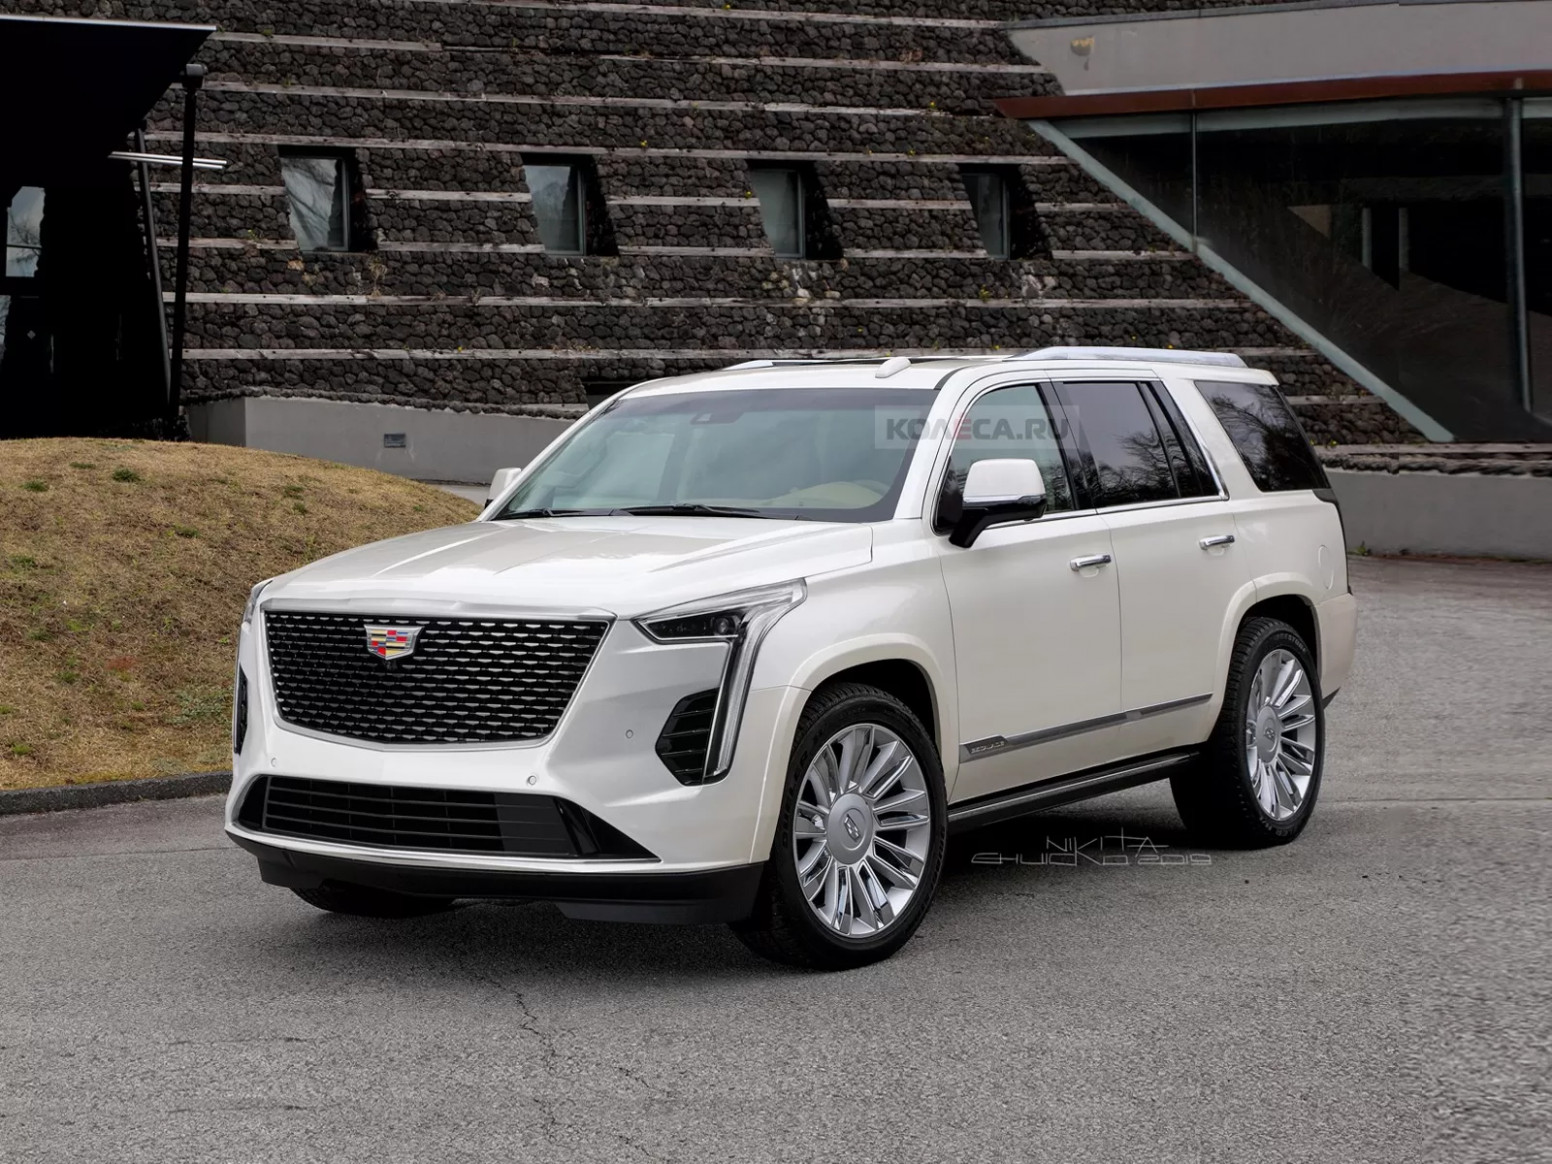 Review Cadillac Escalade 2022 Release Date